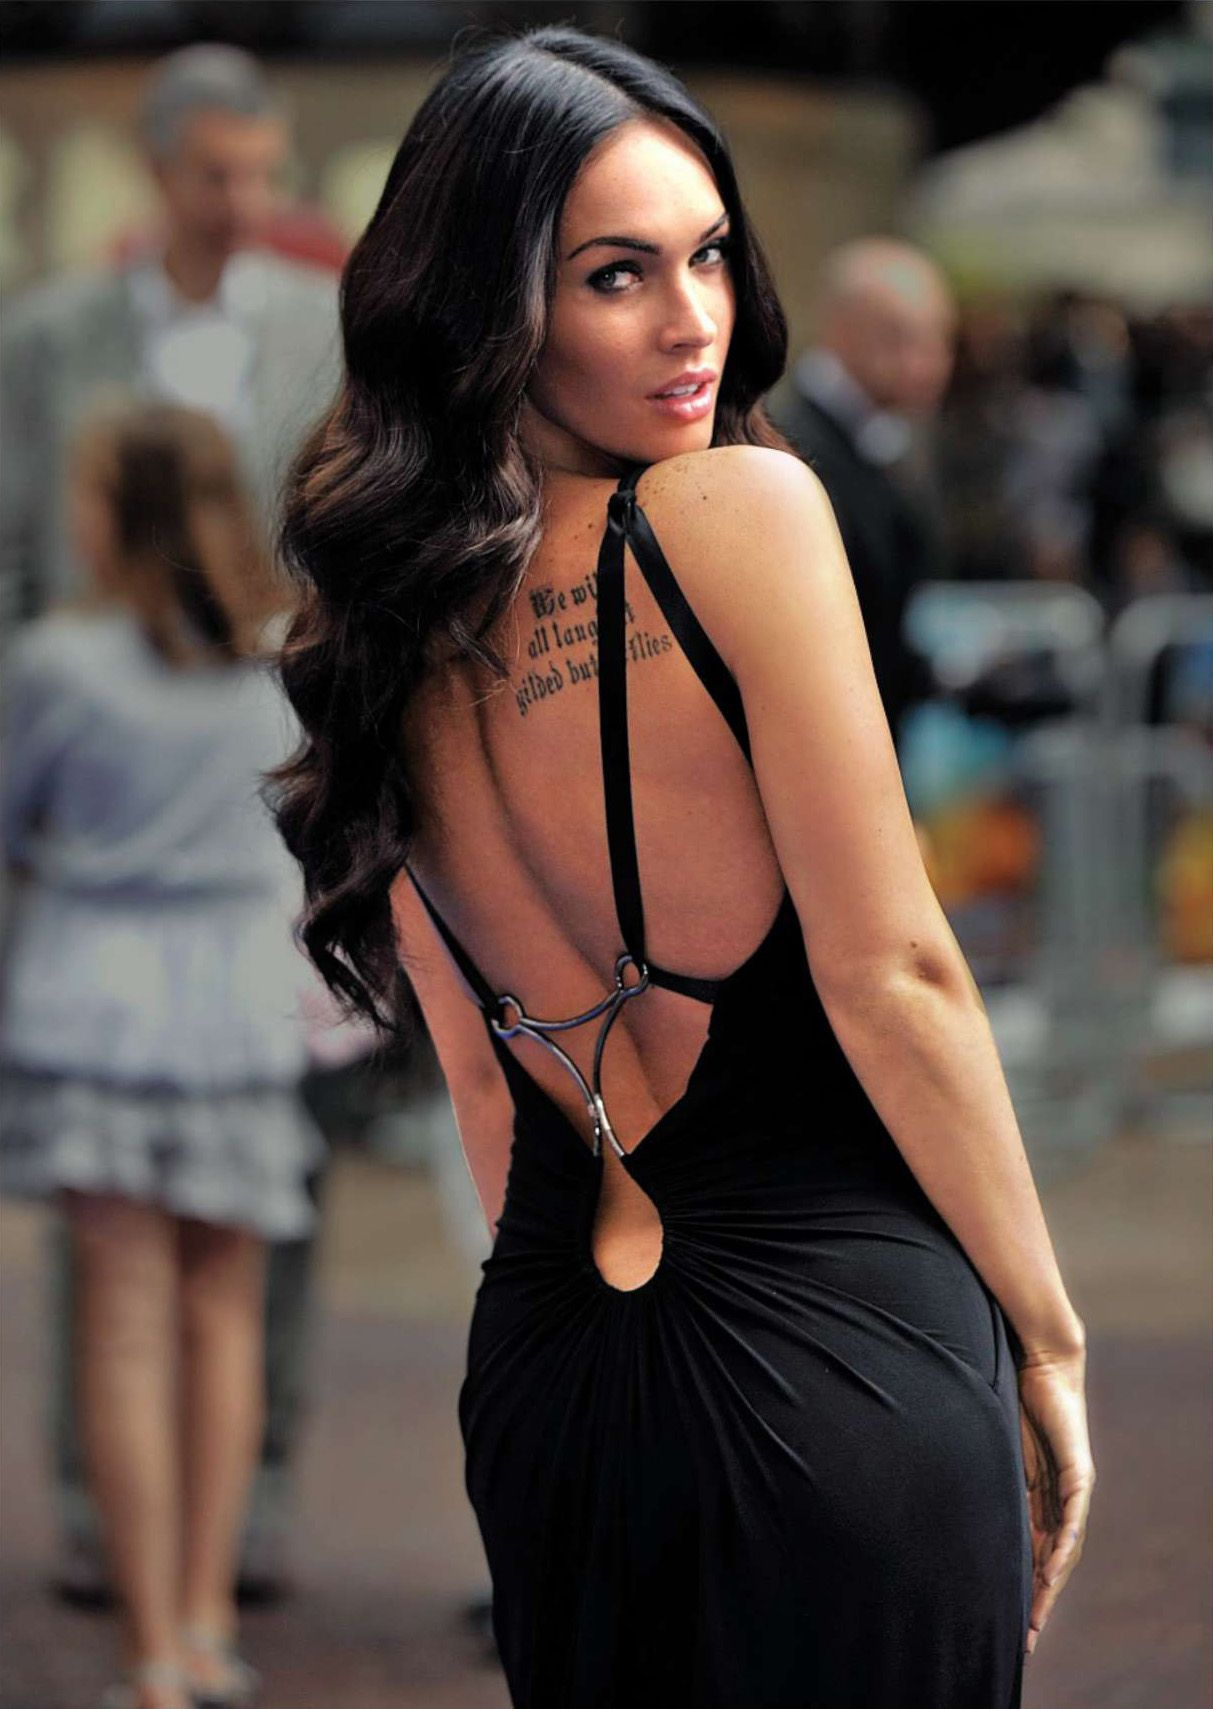 Maxim Hot 100 2010 - 5 Megan Fox